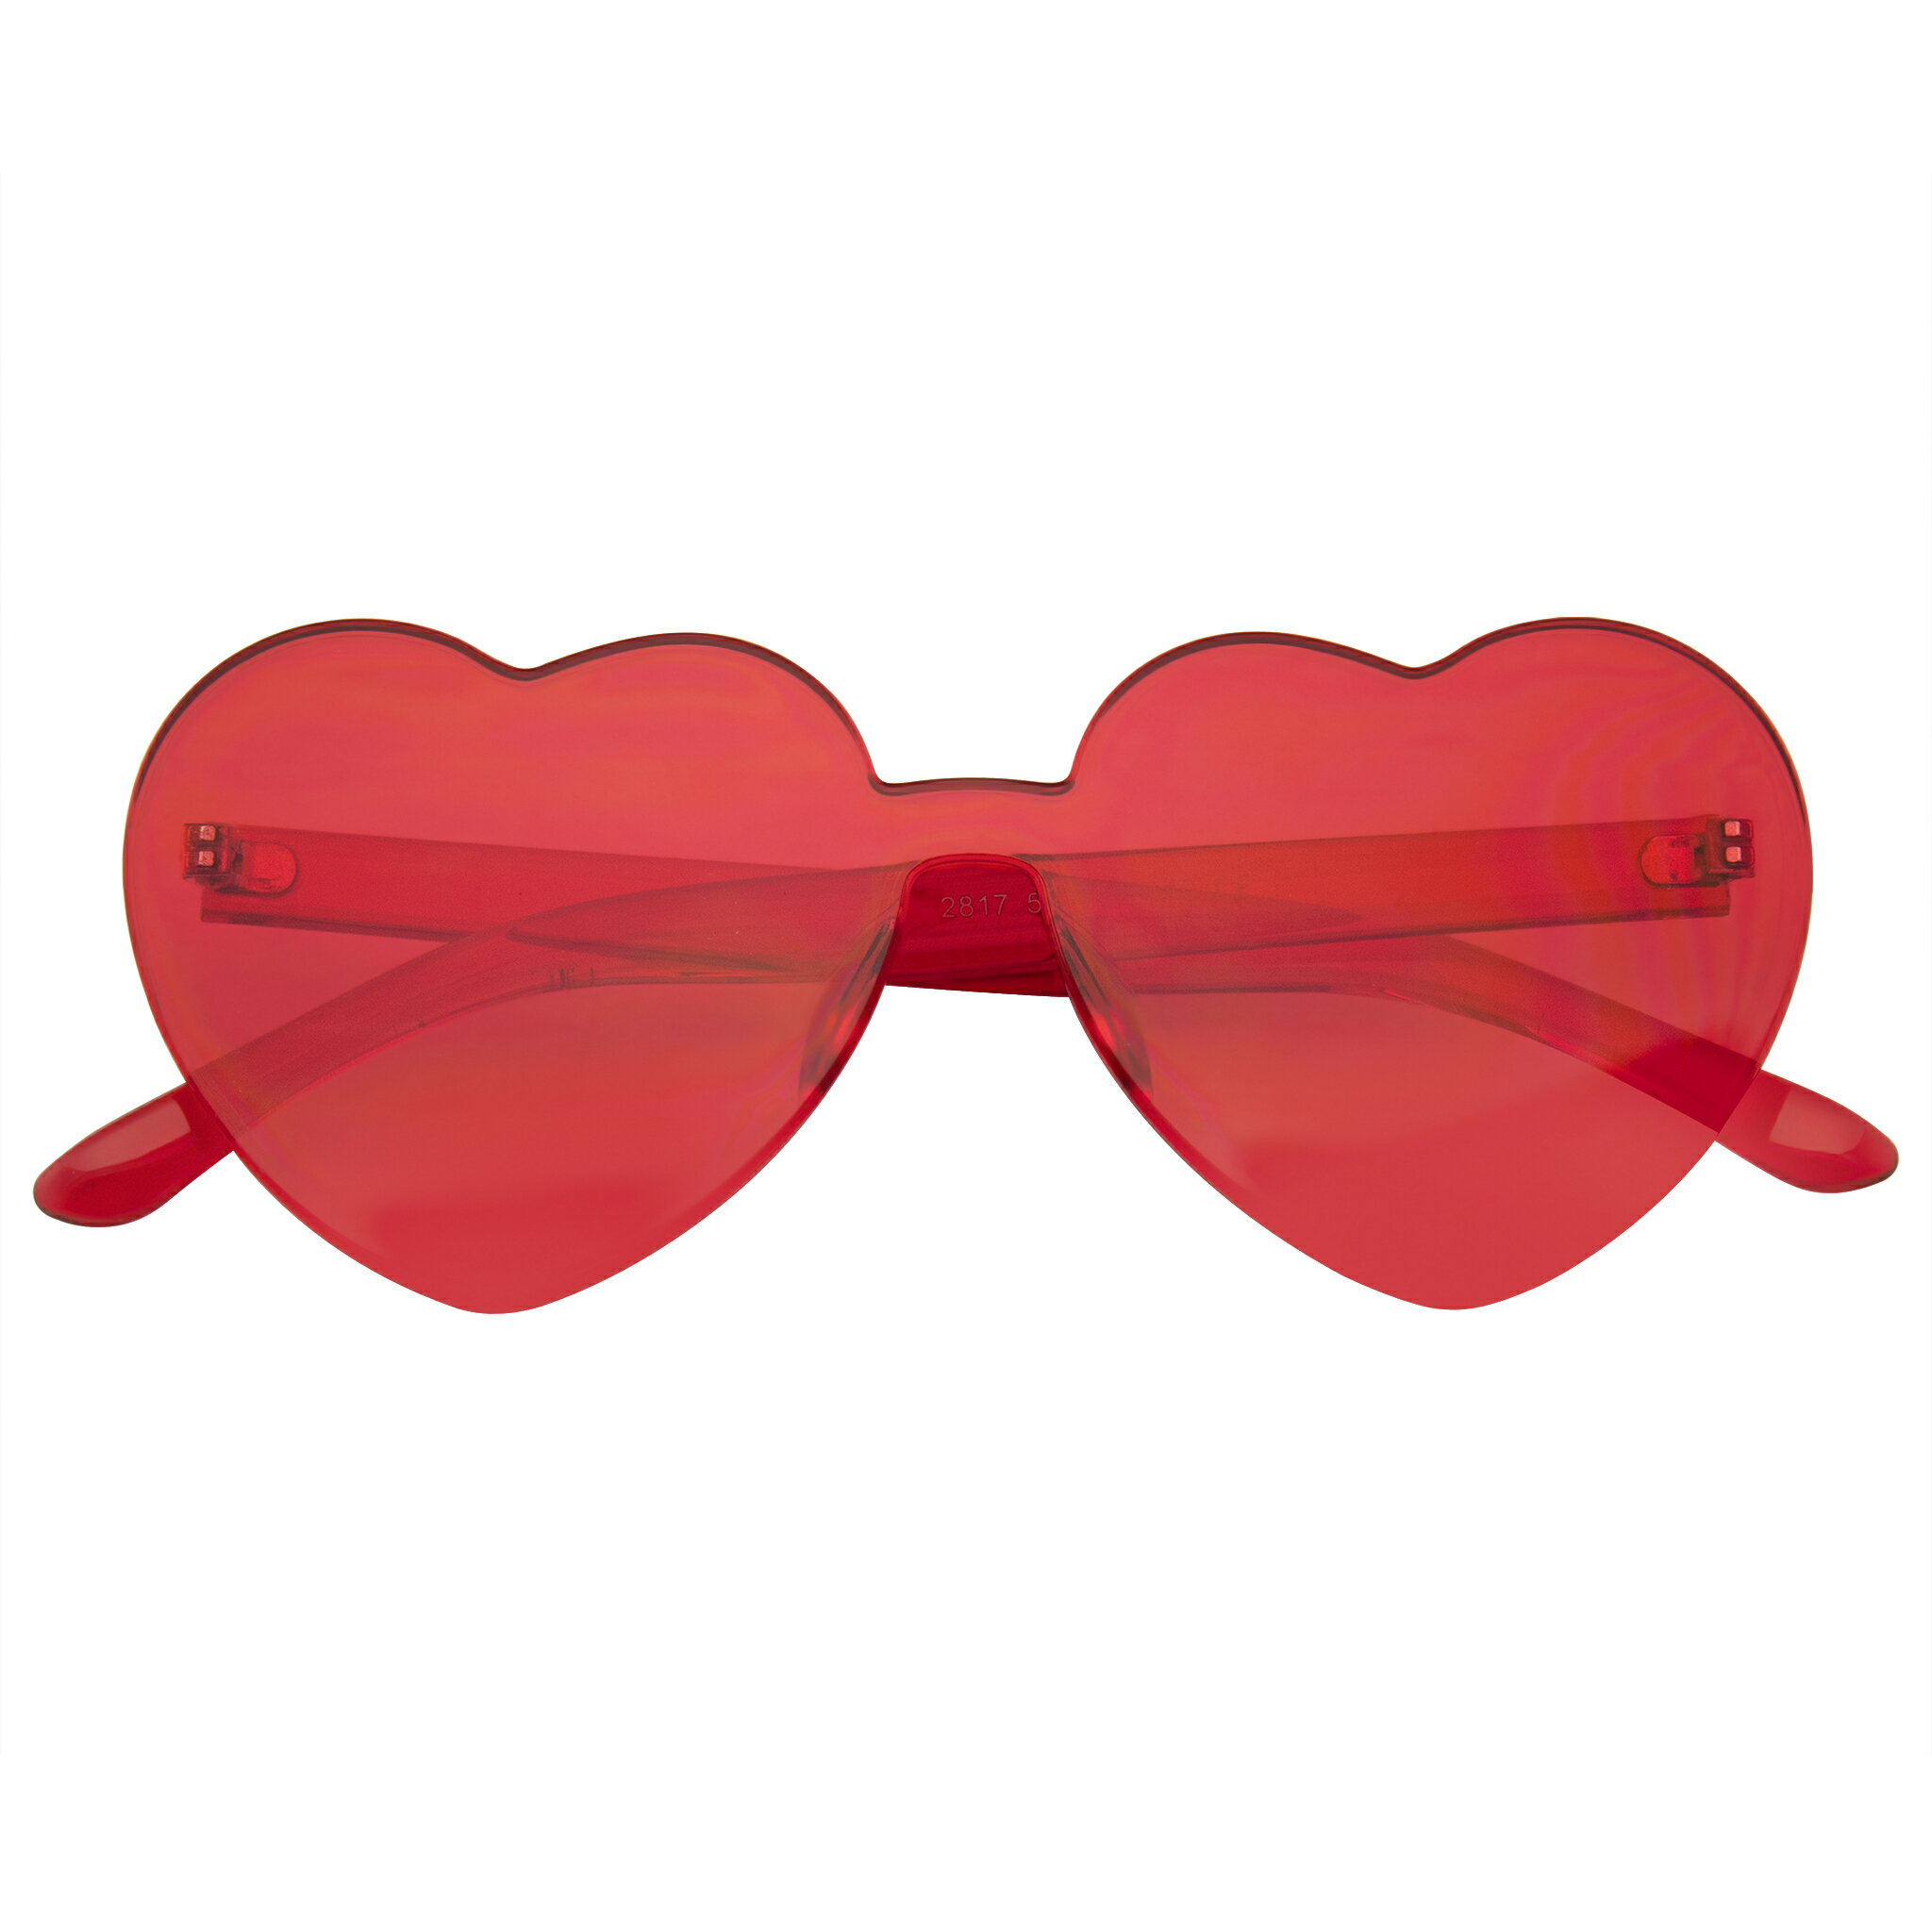 Vintage Retro Fashion Colorful Heart Shaped Sunglasses With Spring Hinge